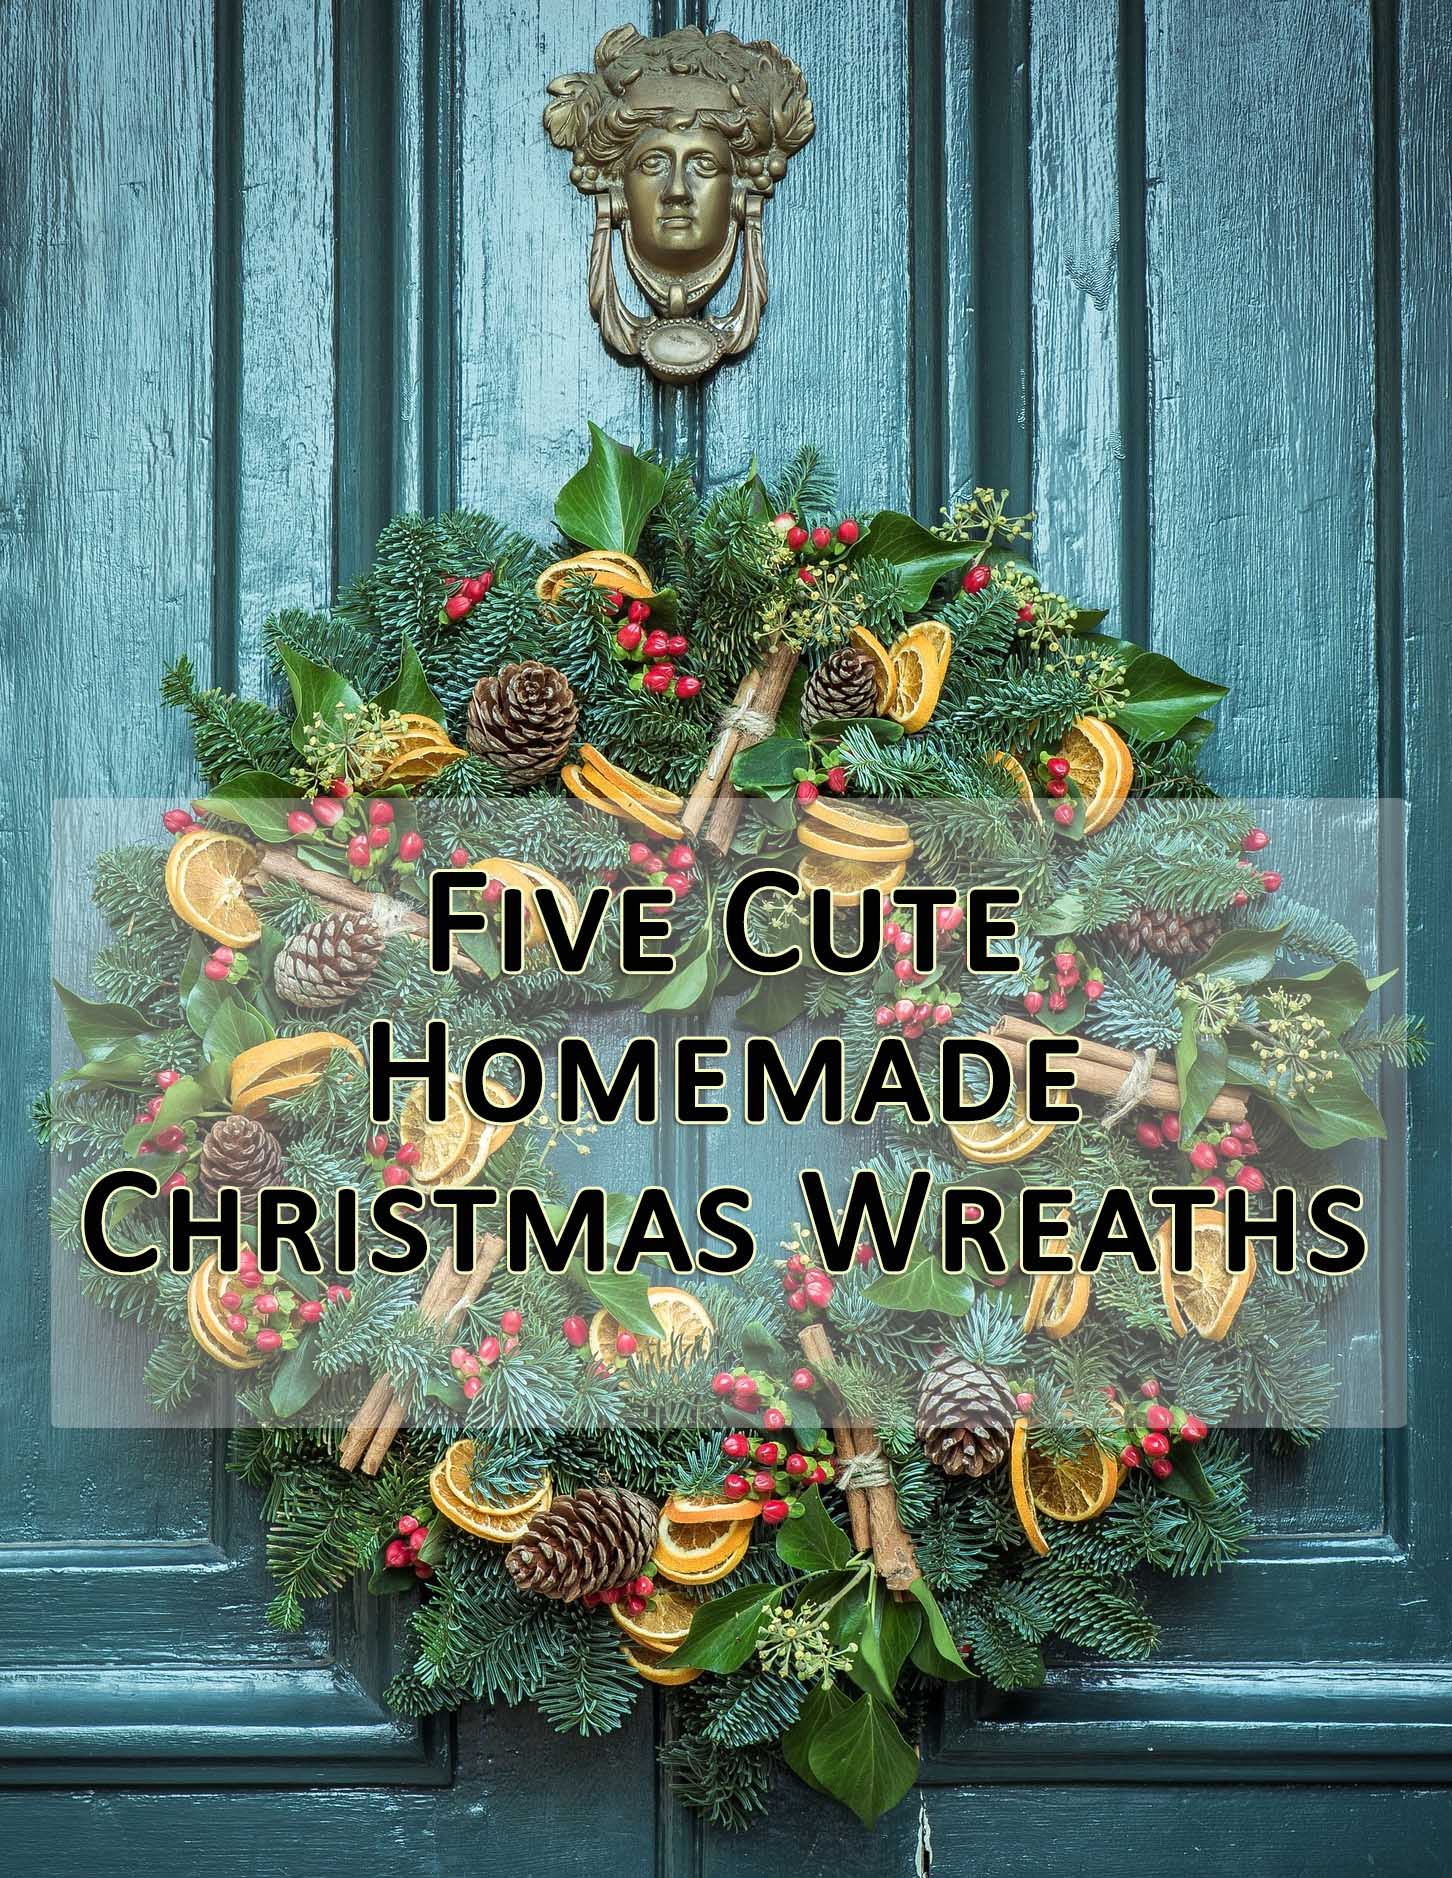 5 cute homemade christmas wreaths